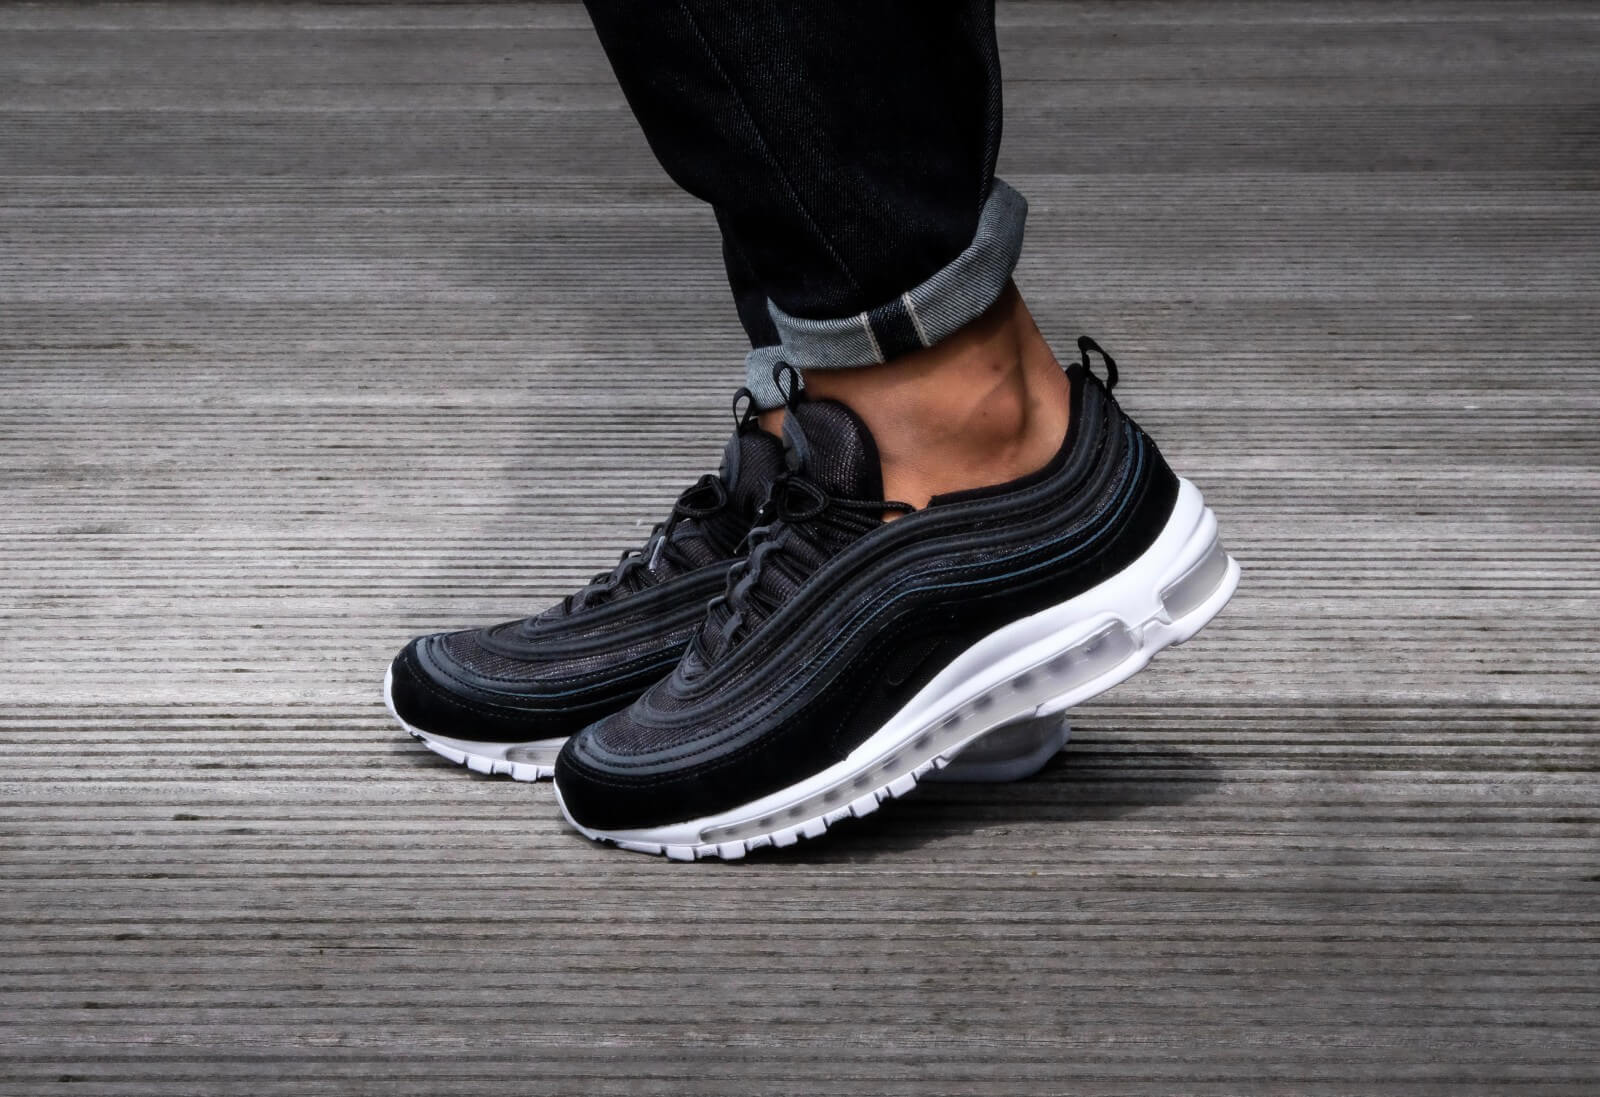 Cheap Nike Air Max 97 Ultra 2017 lifestyle casual shoes fashion mens black